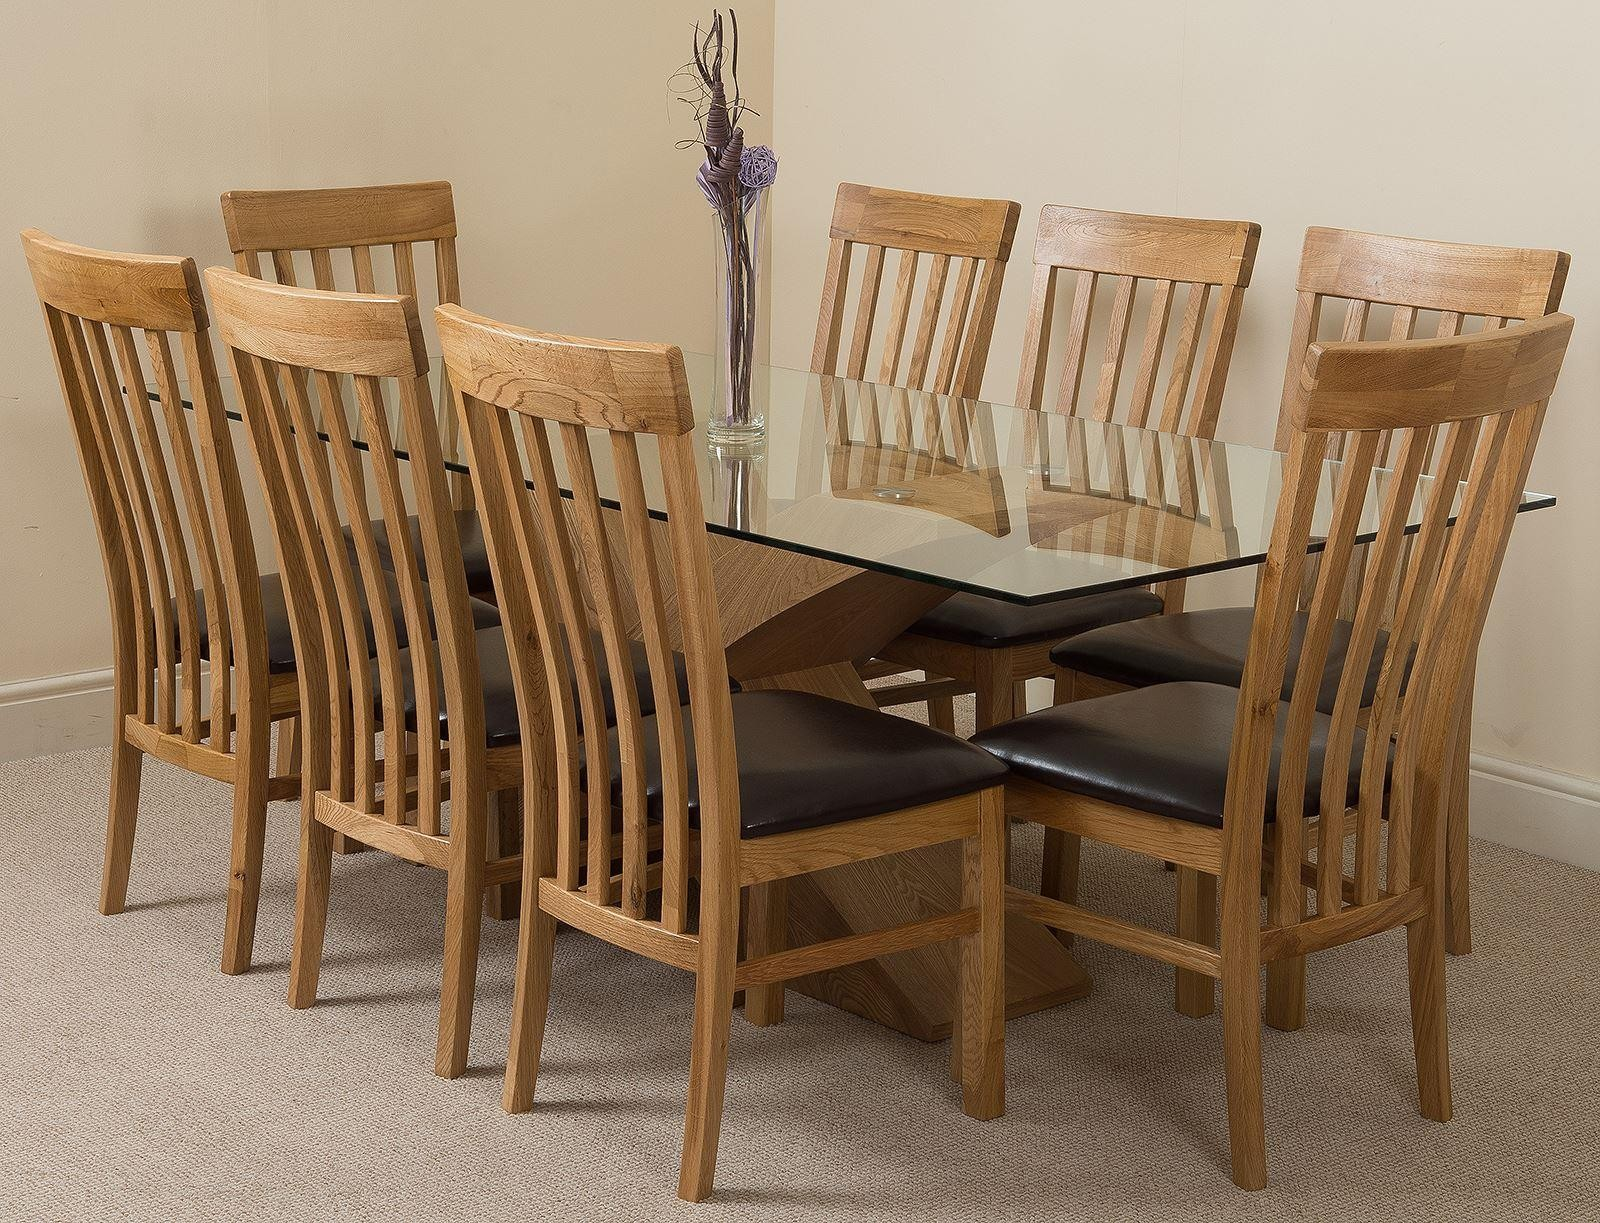 Valencia Oak 200cm Wood and Glass Dining Table with 8 Harvard Solid Oak Dining Chairs [Light Oak and Brown Leather]